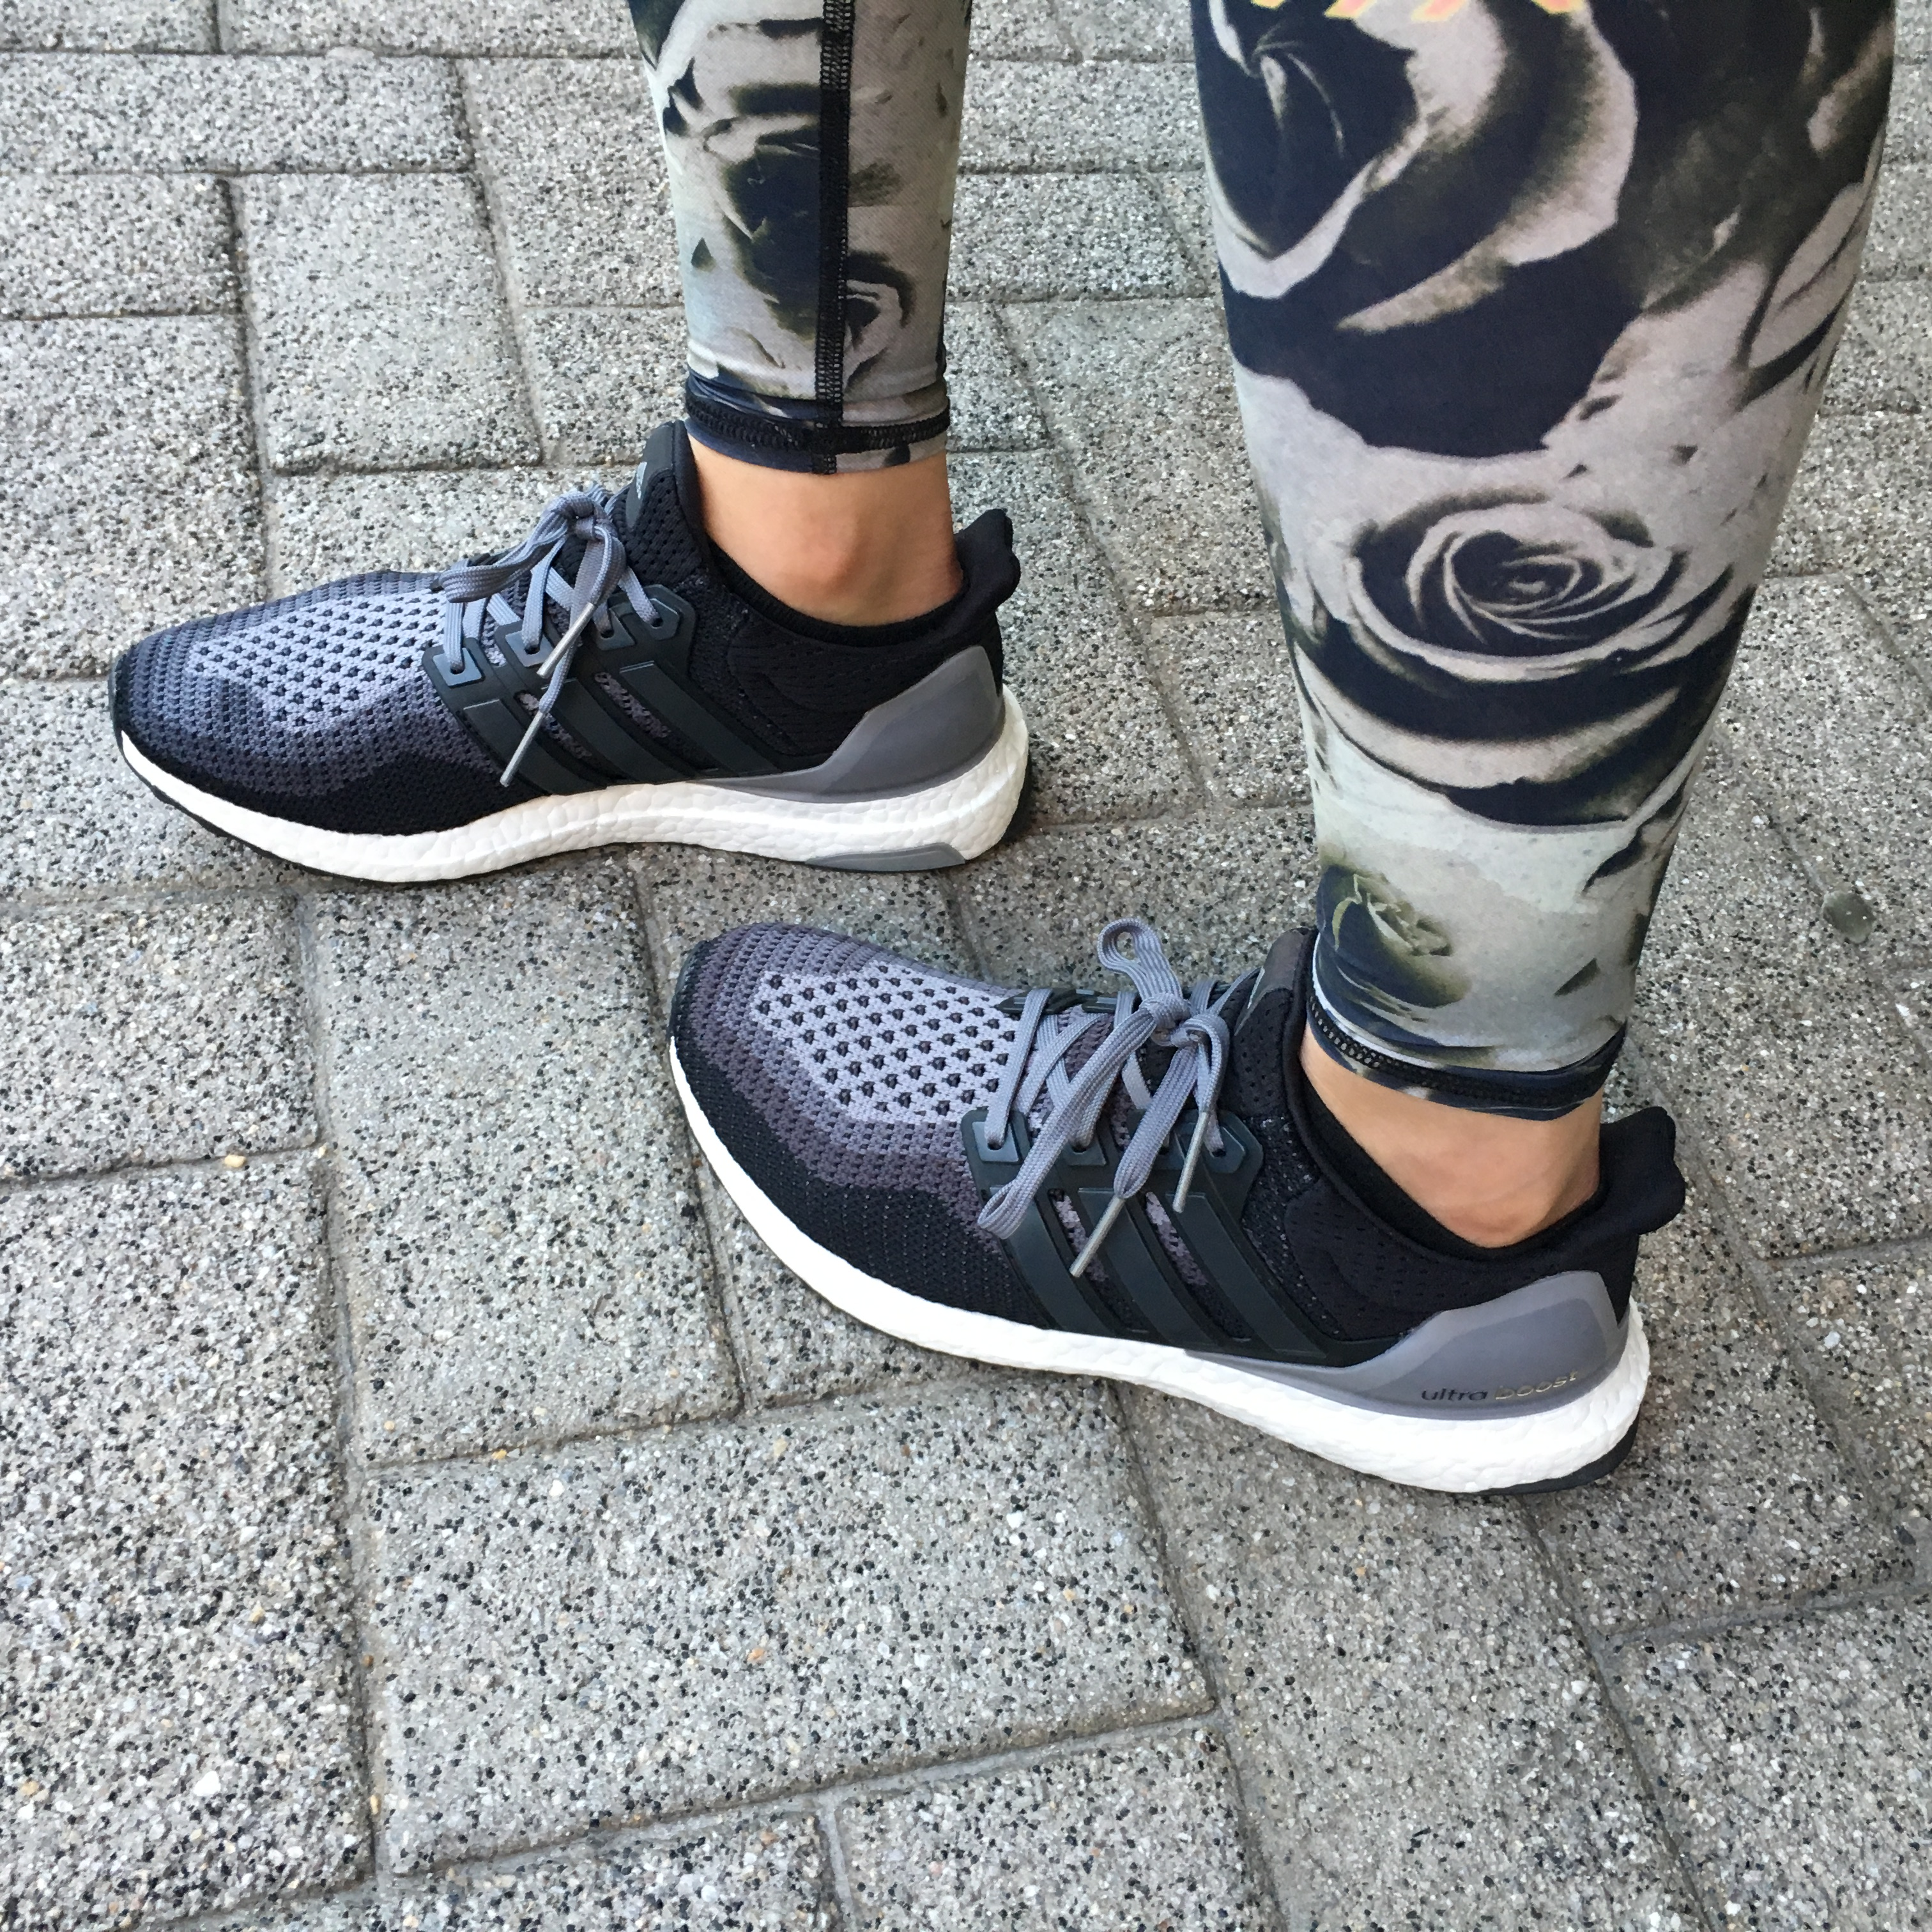 best sneakers for yogis photo